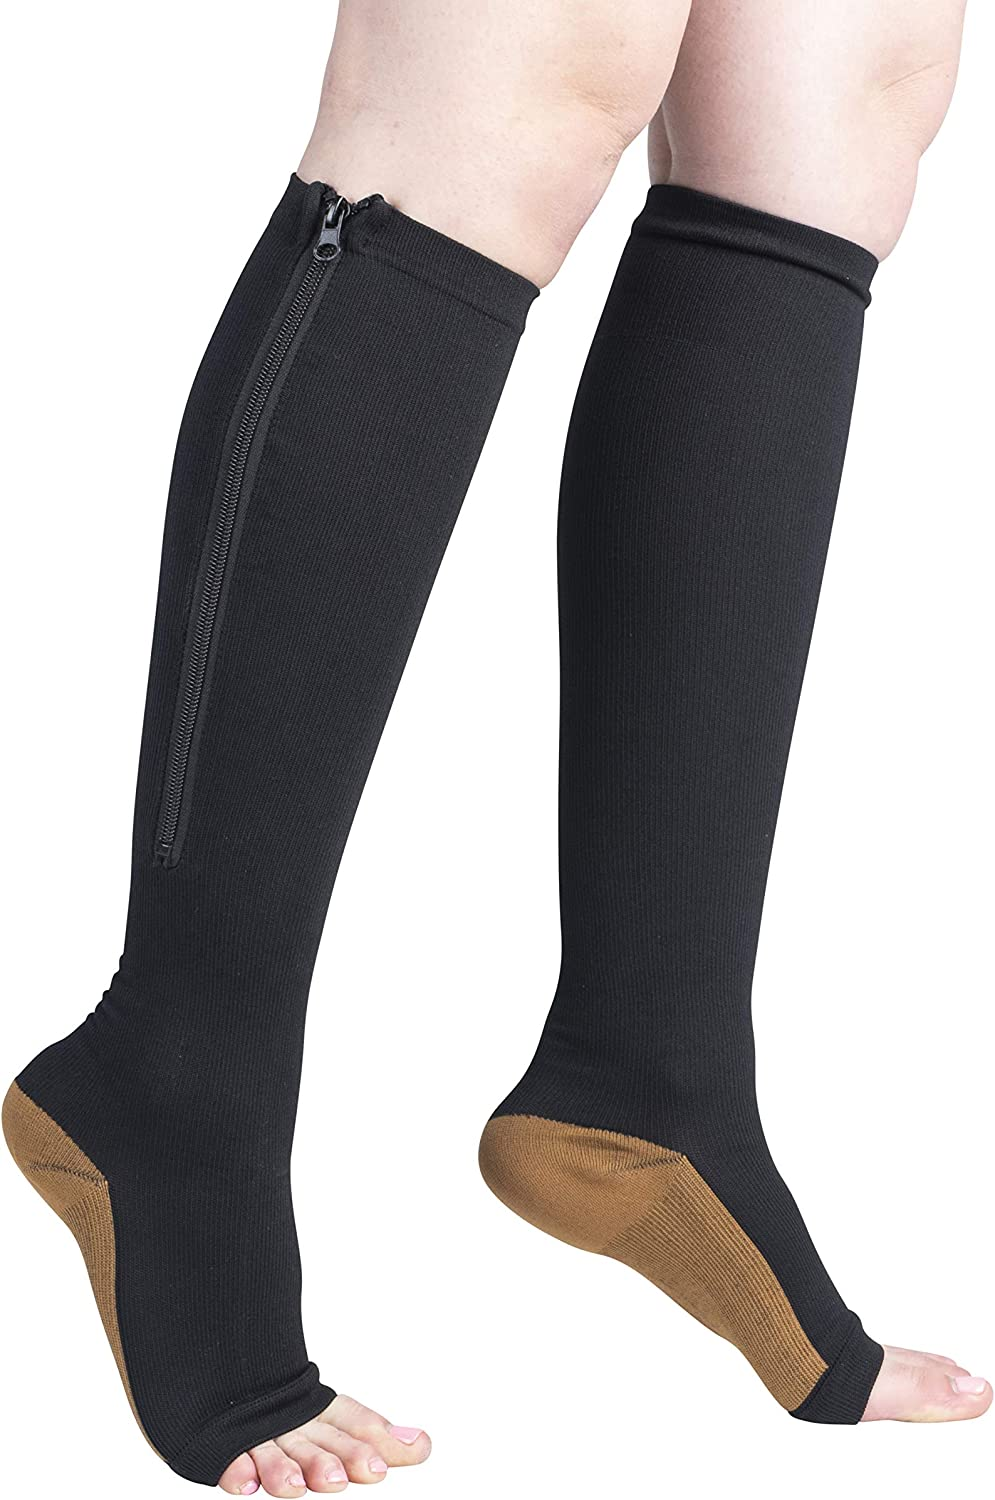 Black Copper Infused Compression Socks with Zipper 20-25 mmHg Open Toe Free Eyeglass Pouch by Juniper's Secret (L/XL)